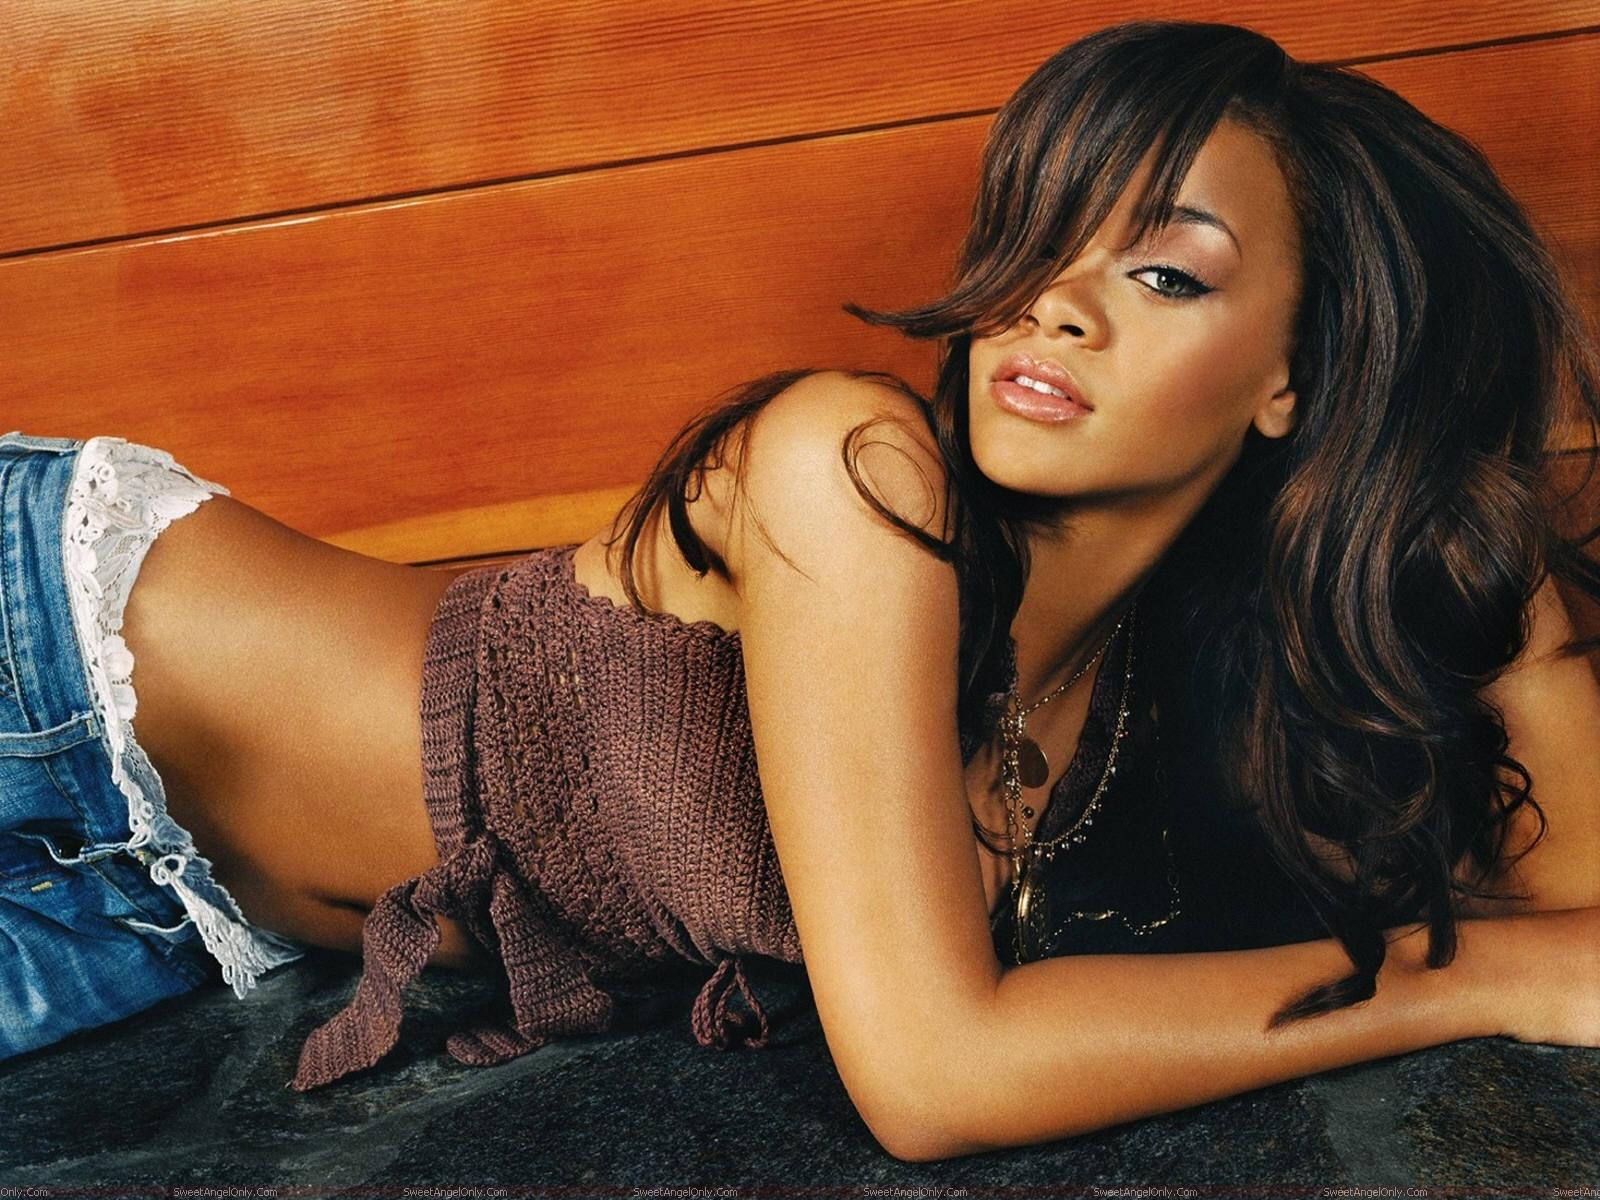 hollywood all stars: rihanna hot pictures and wallpapers